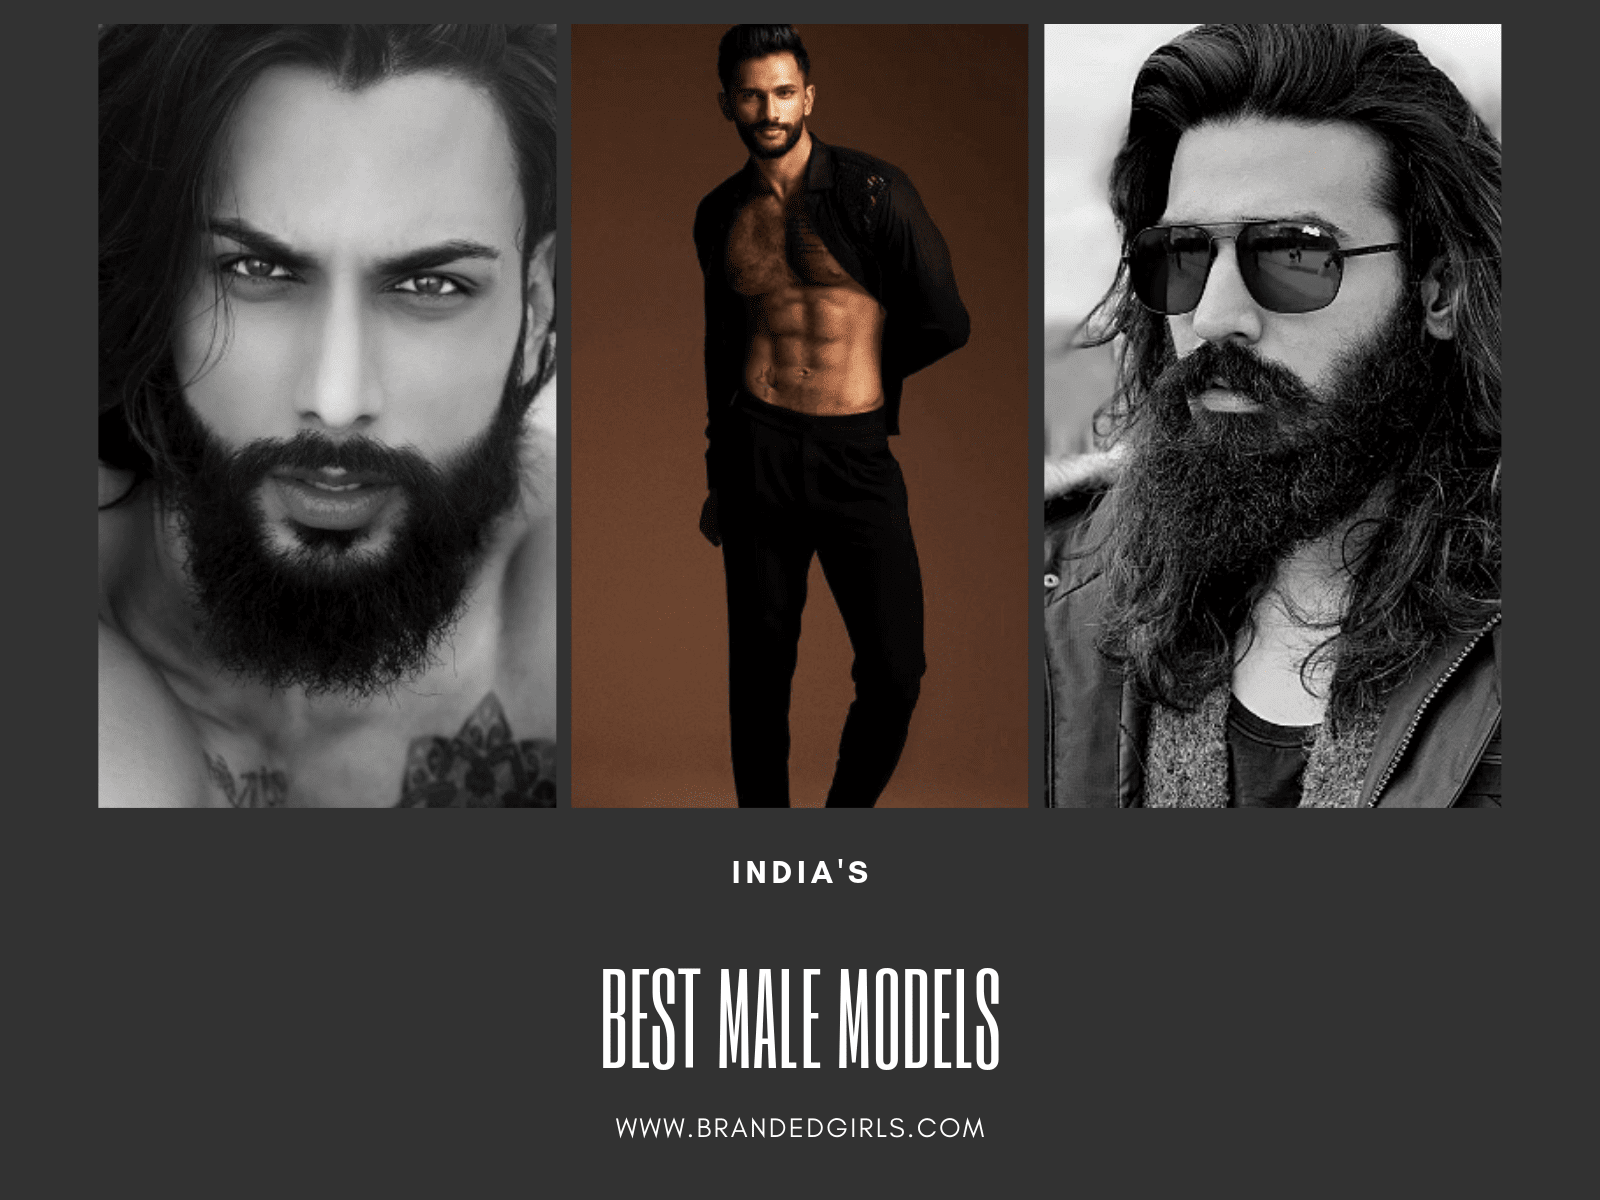 Top 20 Indian Male Models of 2019 Updated List